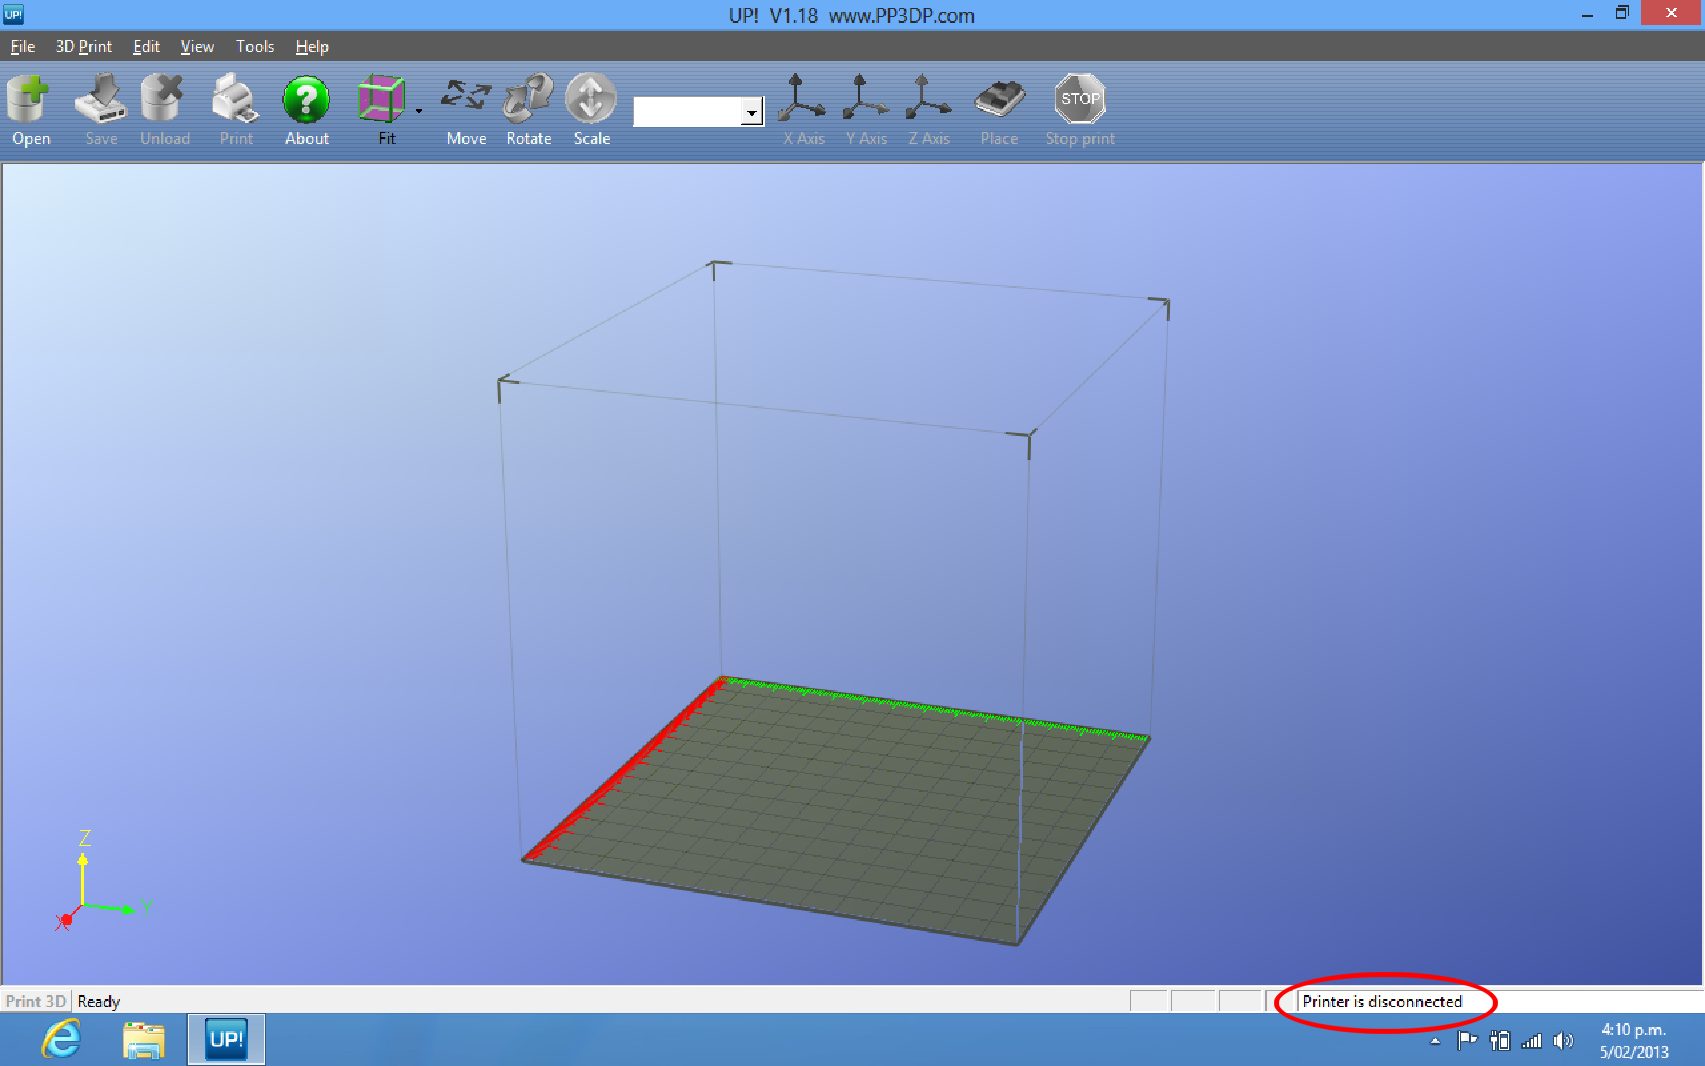 How to install printer drivers in Windows? : 3D Printing Systems